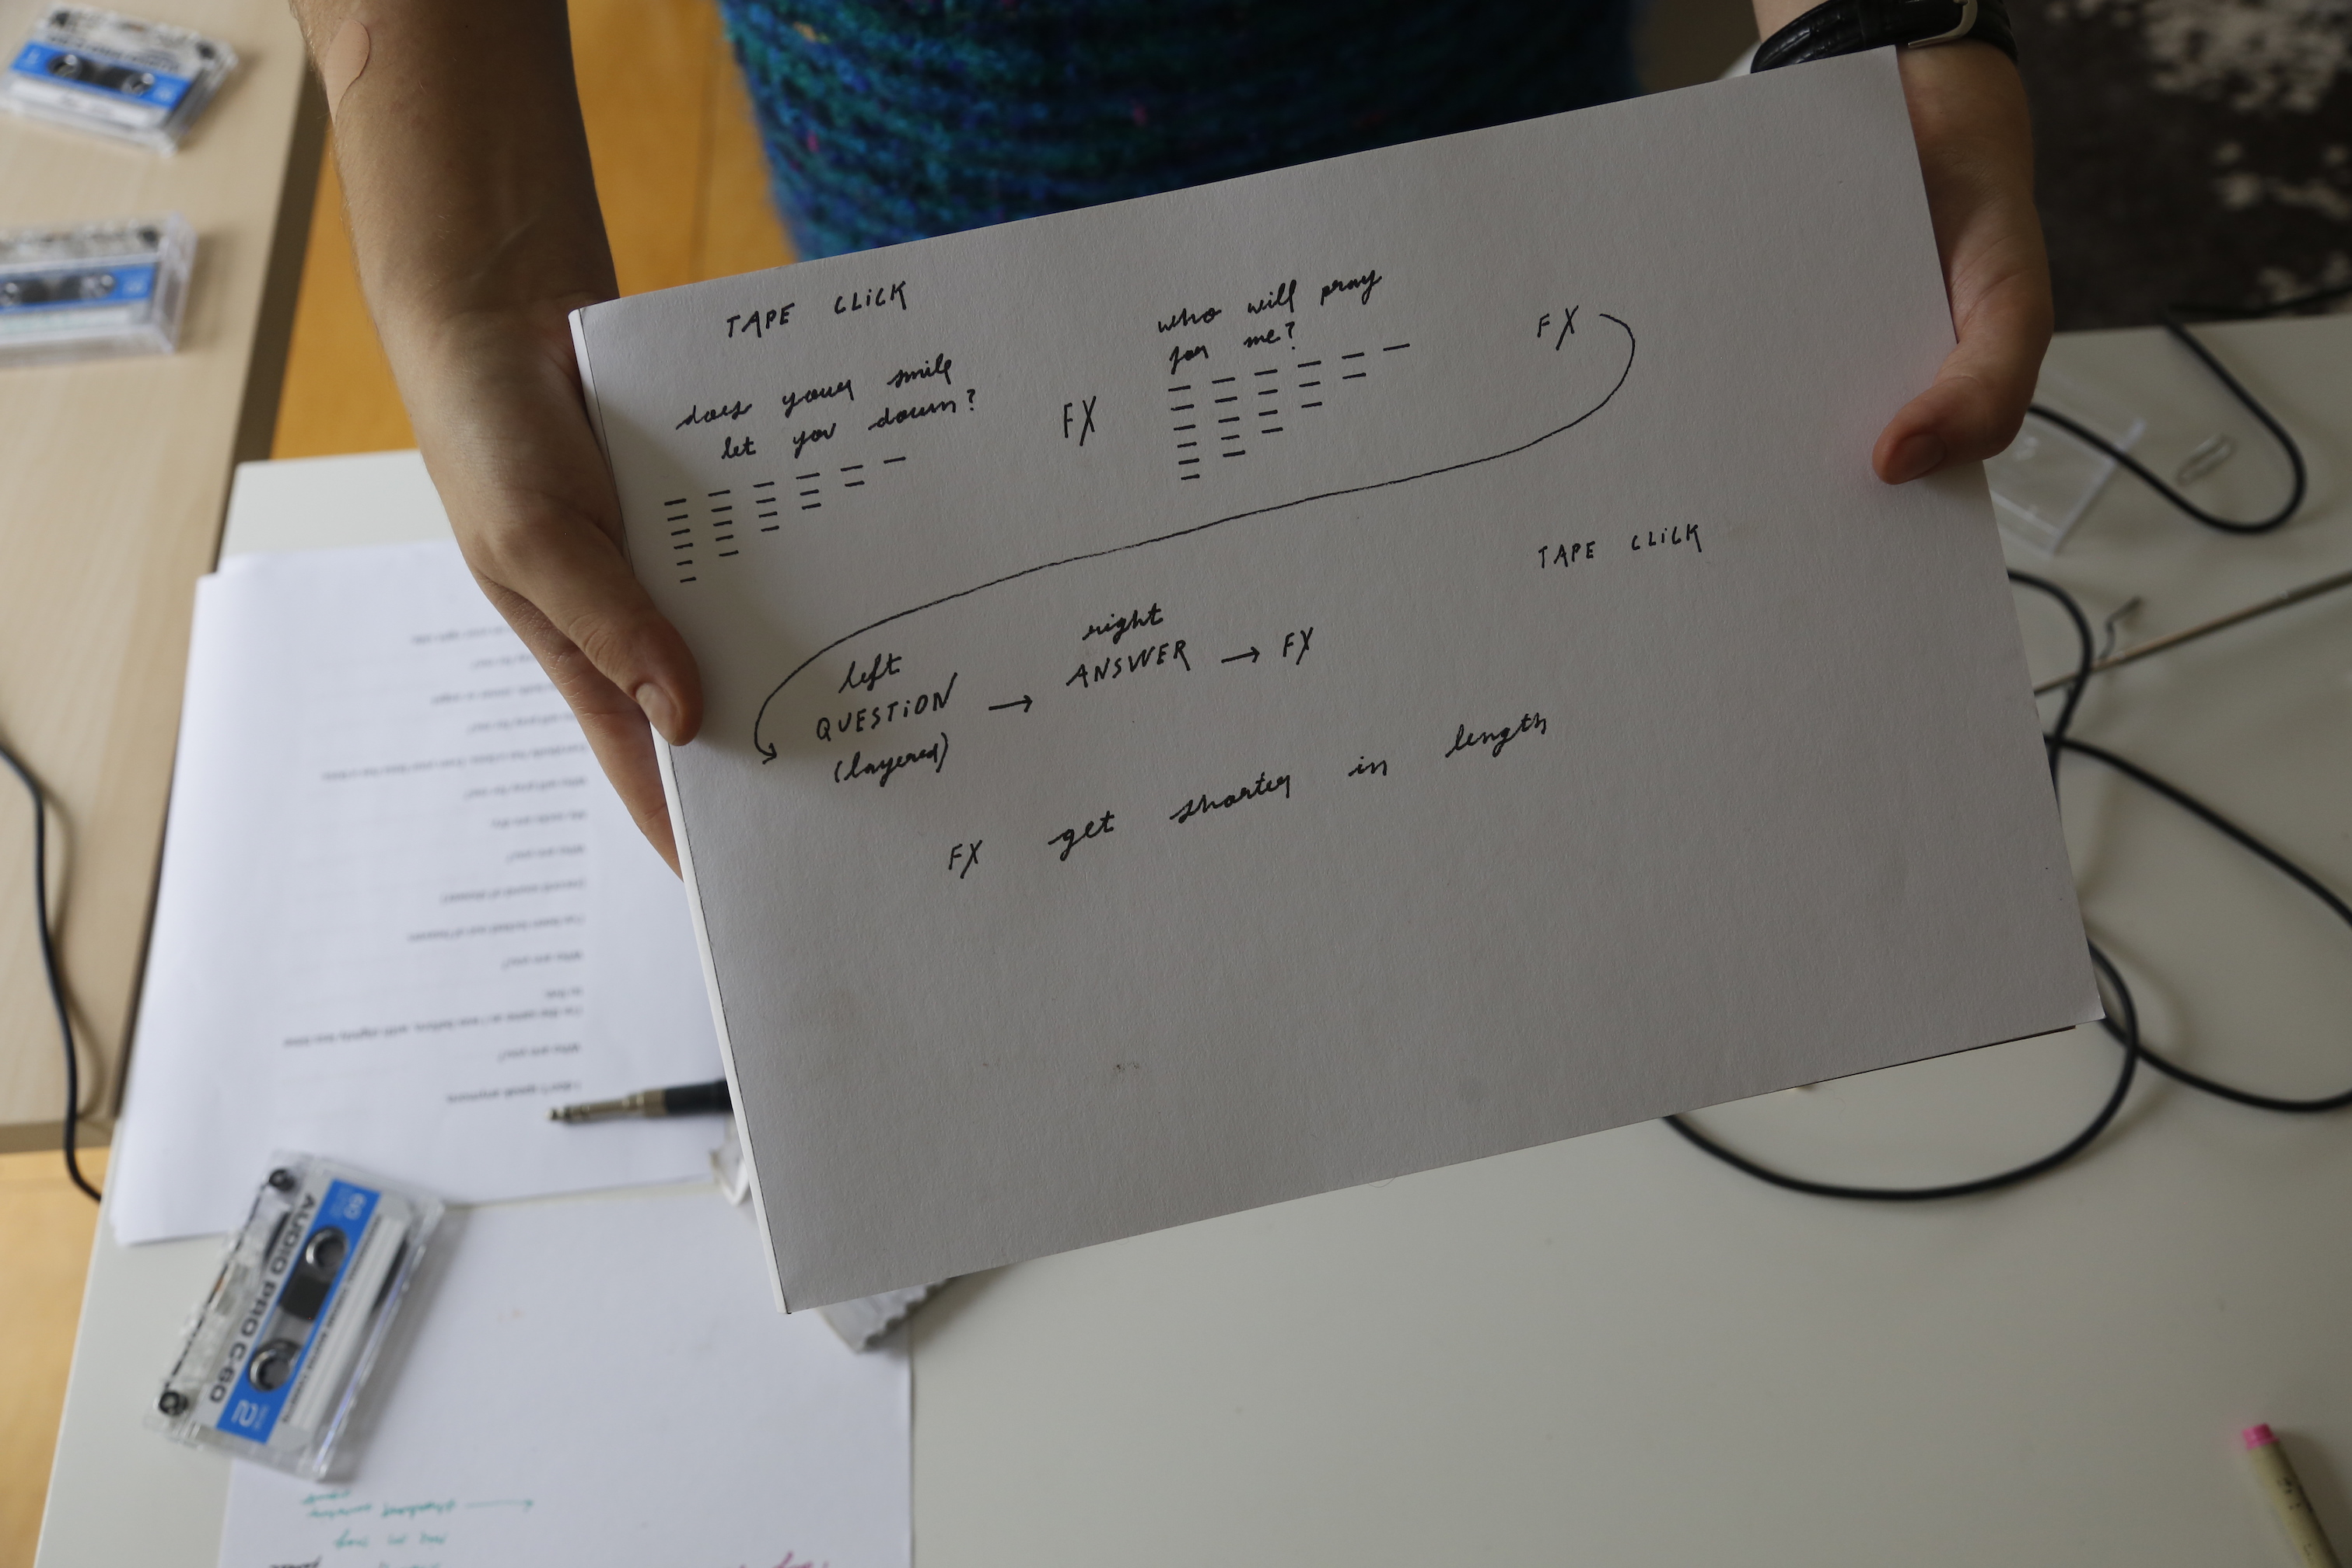 Detail of Residency Project Notebook